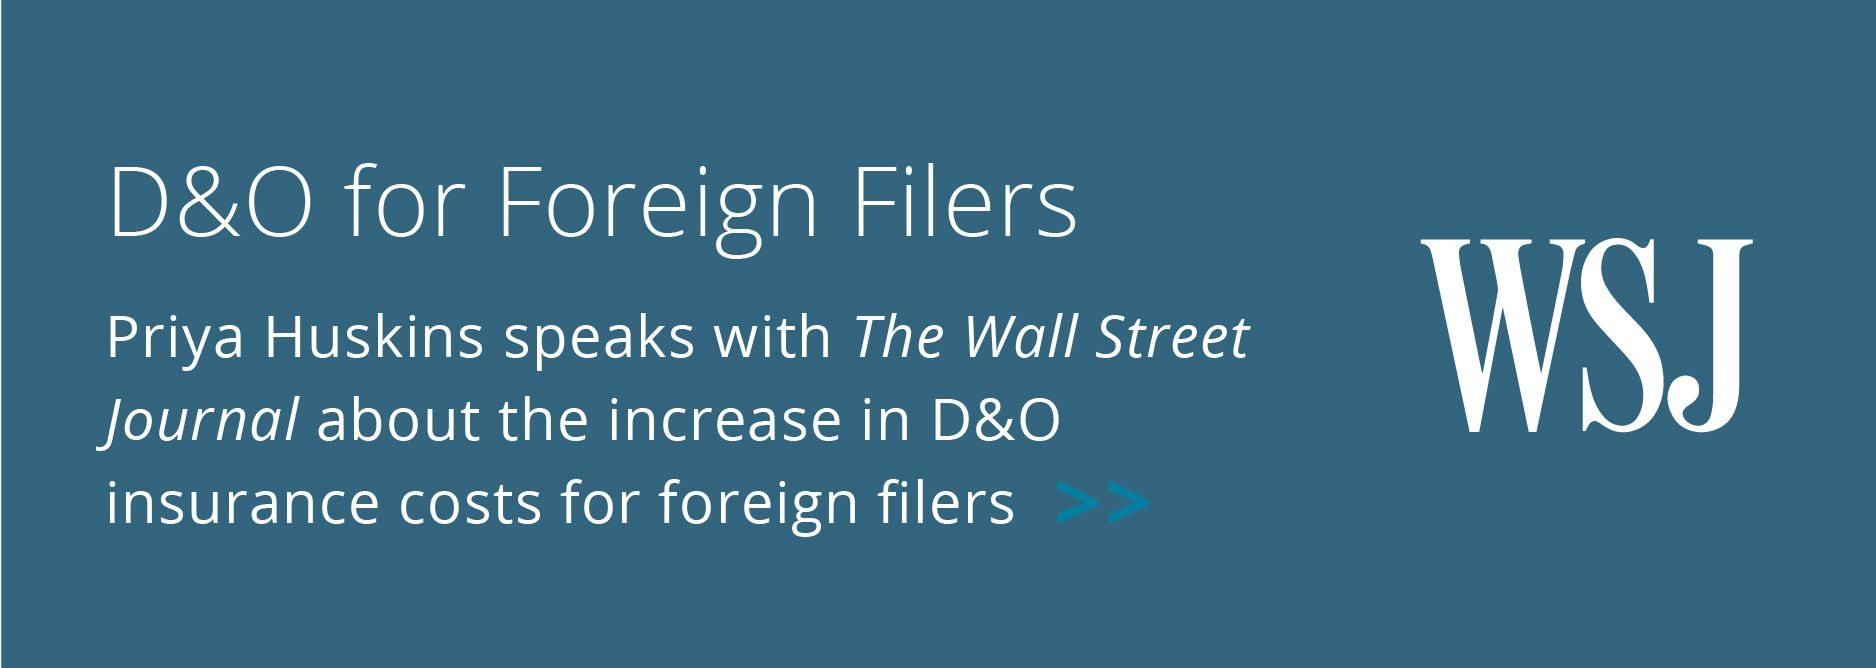 Priya Huskins speaks with The Wall Street Journal about the increase in D&O insurance costs for foreign filers